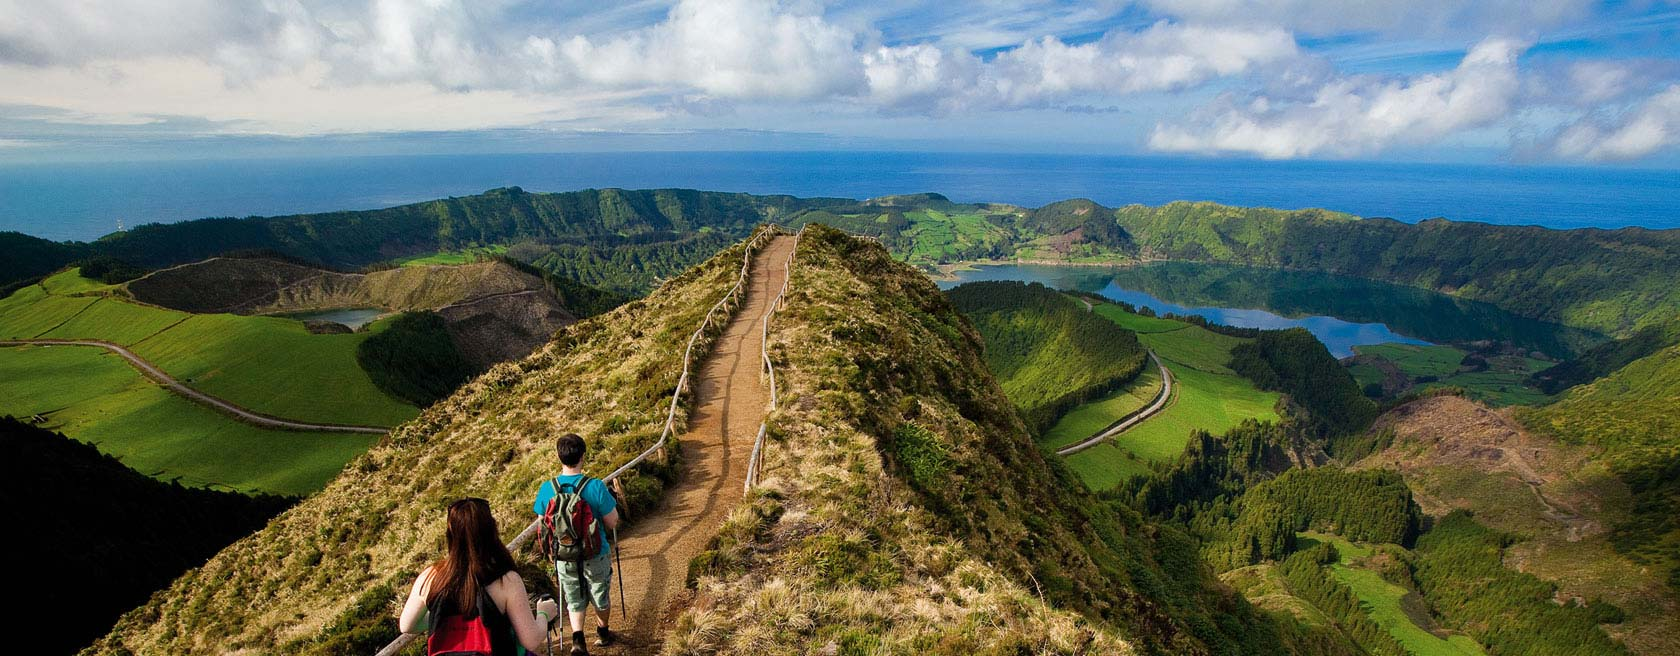 A Journey to the Portuguese Azores Islands